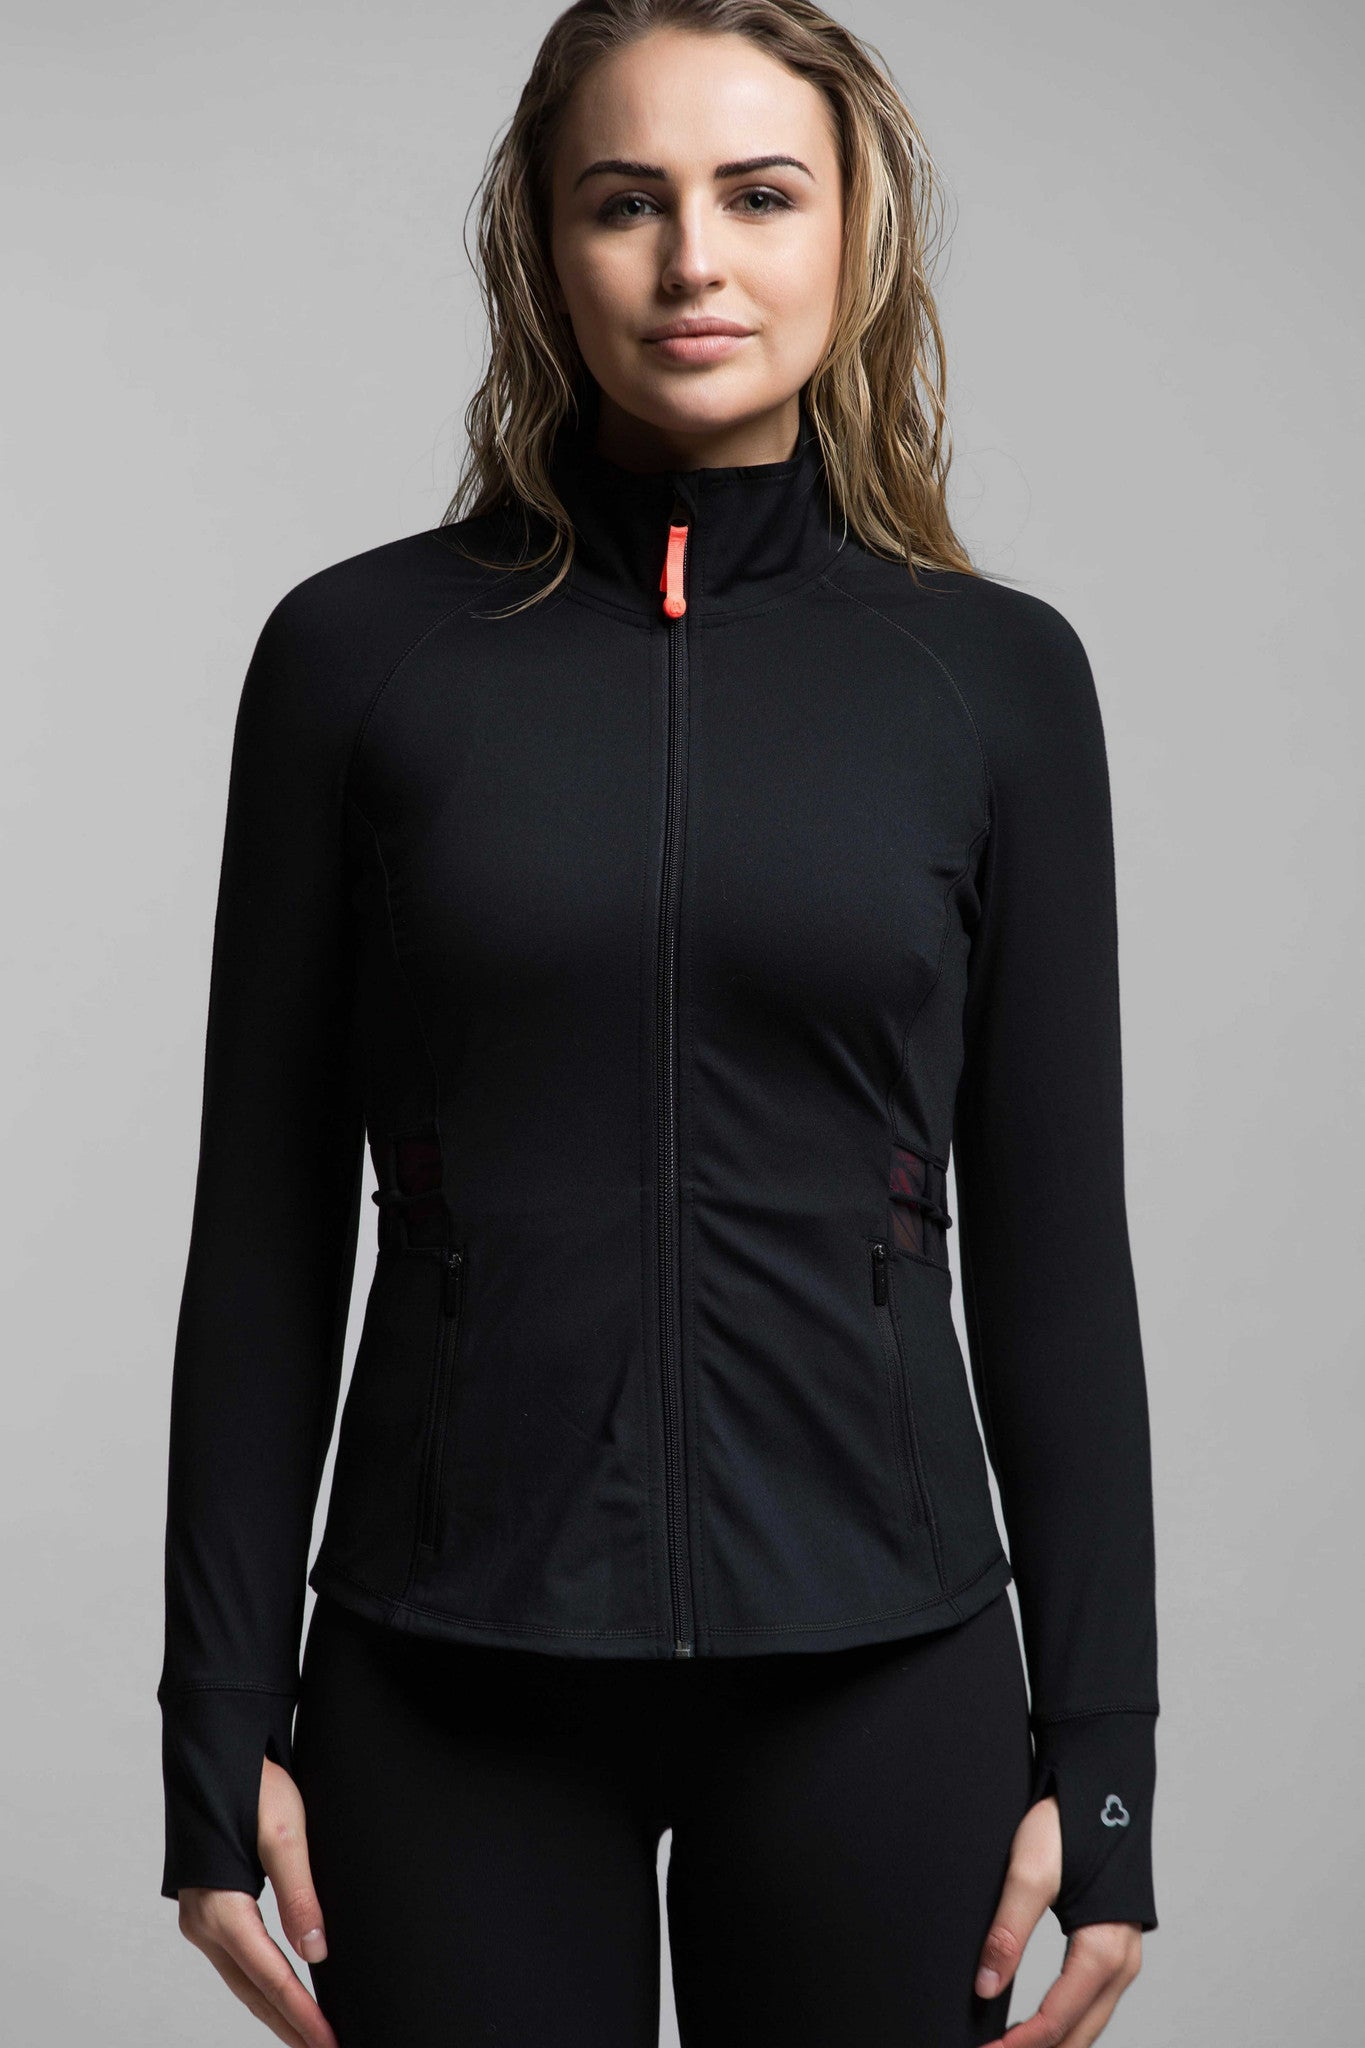 Zuri High Performance Jacket